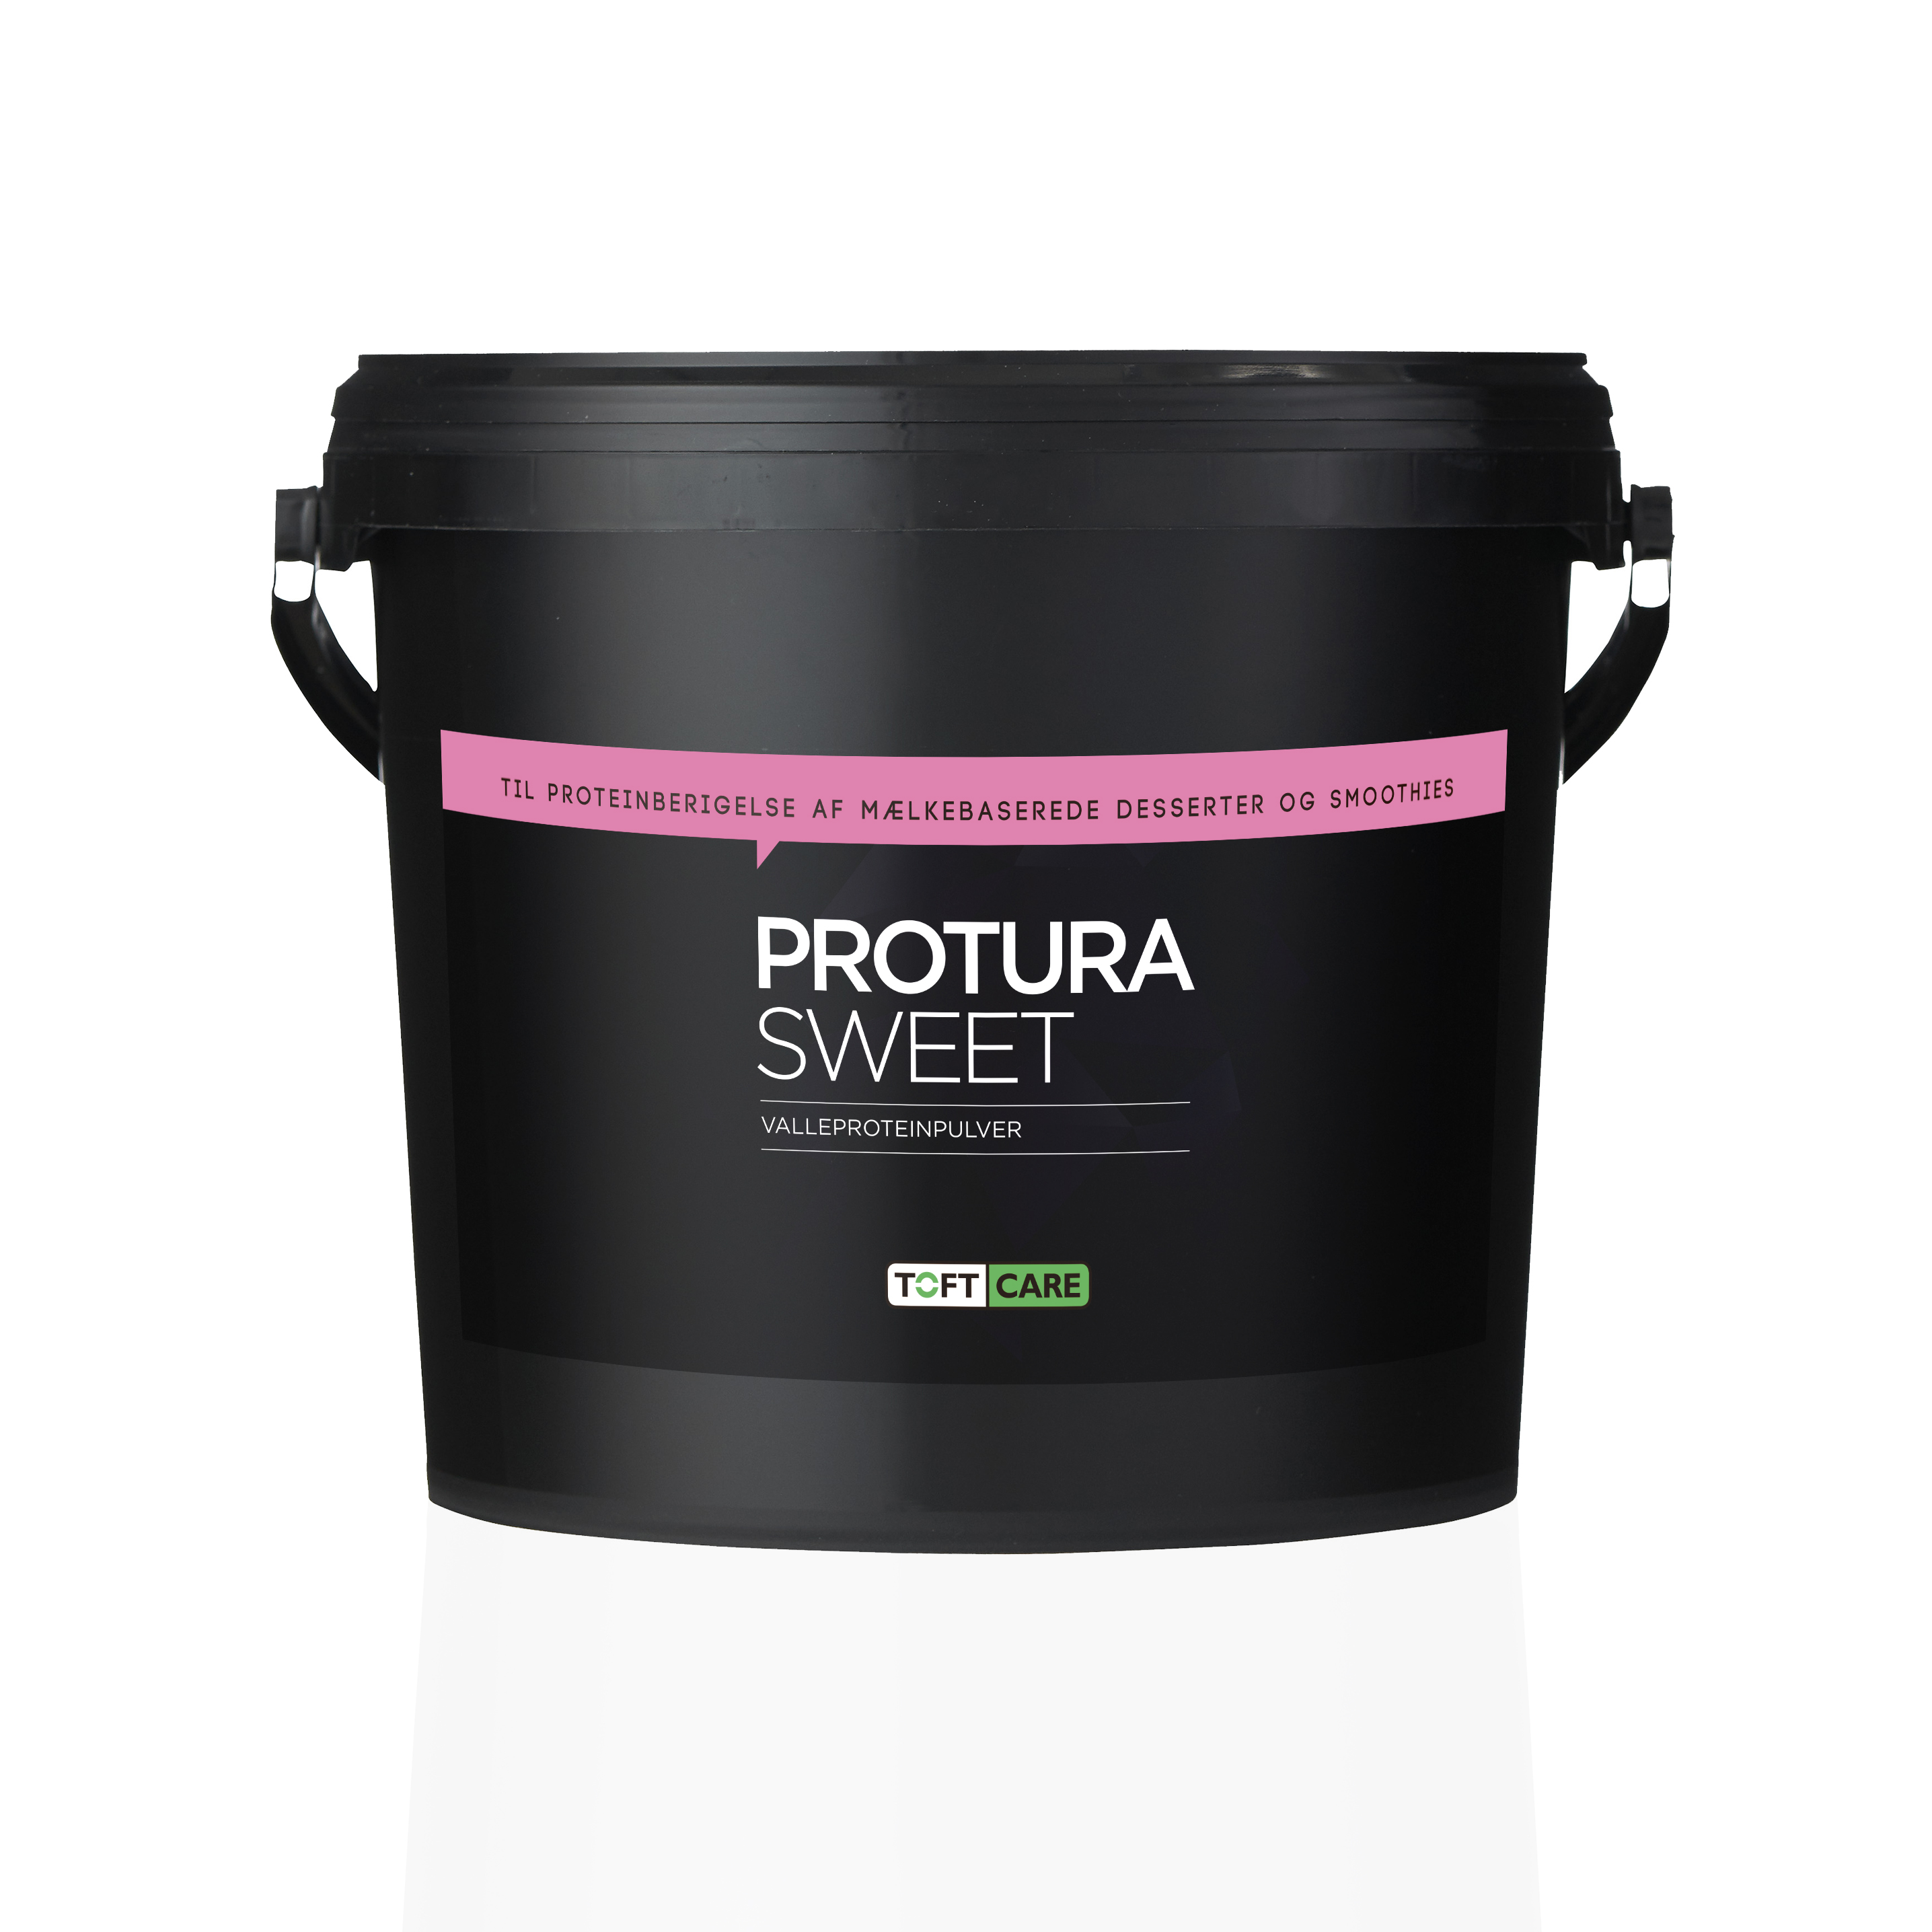 Image of Protura Sweet 1,5 kg